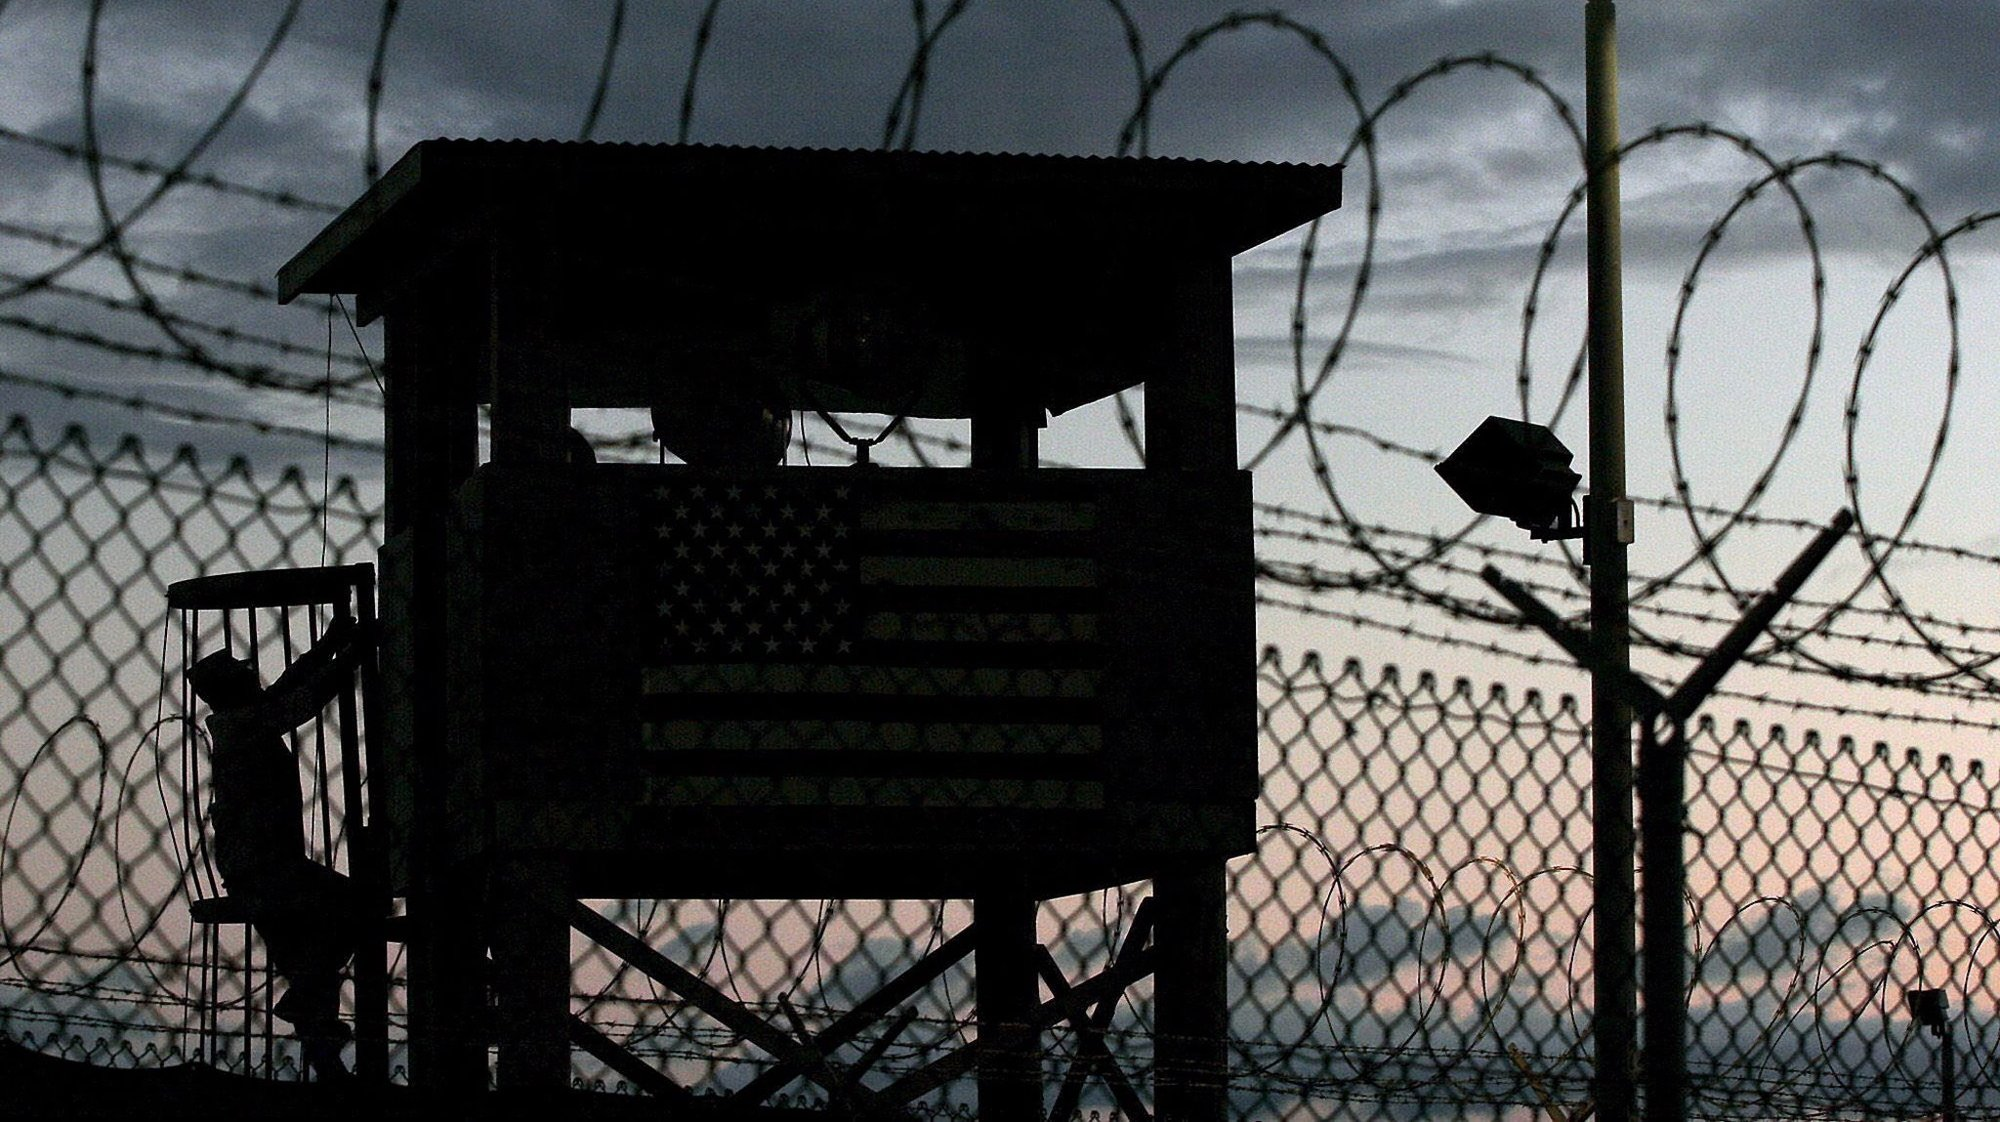 epa05488797 (FILE) A file picture dated 16 February 2006 shows a Joint Task Force member (L, silhouetted) climbing to his guard tower post surrounded by triple rows of razor barbed wire that perimeter the security of Camp Delta, Guantanamo Naval Sation, Cuba. According to media reports on 16 August 2016, the US has sent 15 Guantanamo Bay (GTMO) inmates, 12 Yemenis and three Afghanis, to the United Arab Emirates (UAE). The transfer, the largest under US president Barack Obama's administration, has brought the total number of prisoners in the US military prison down to 61, media added quoting the Pentagon.  EPA/JOHN RILEY